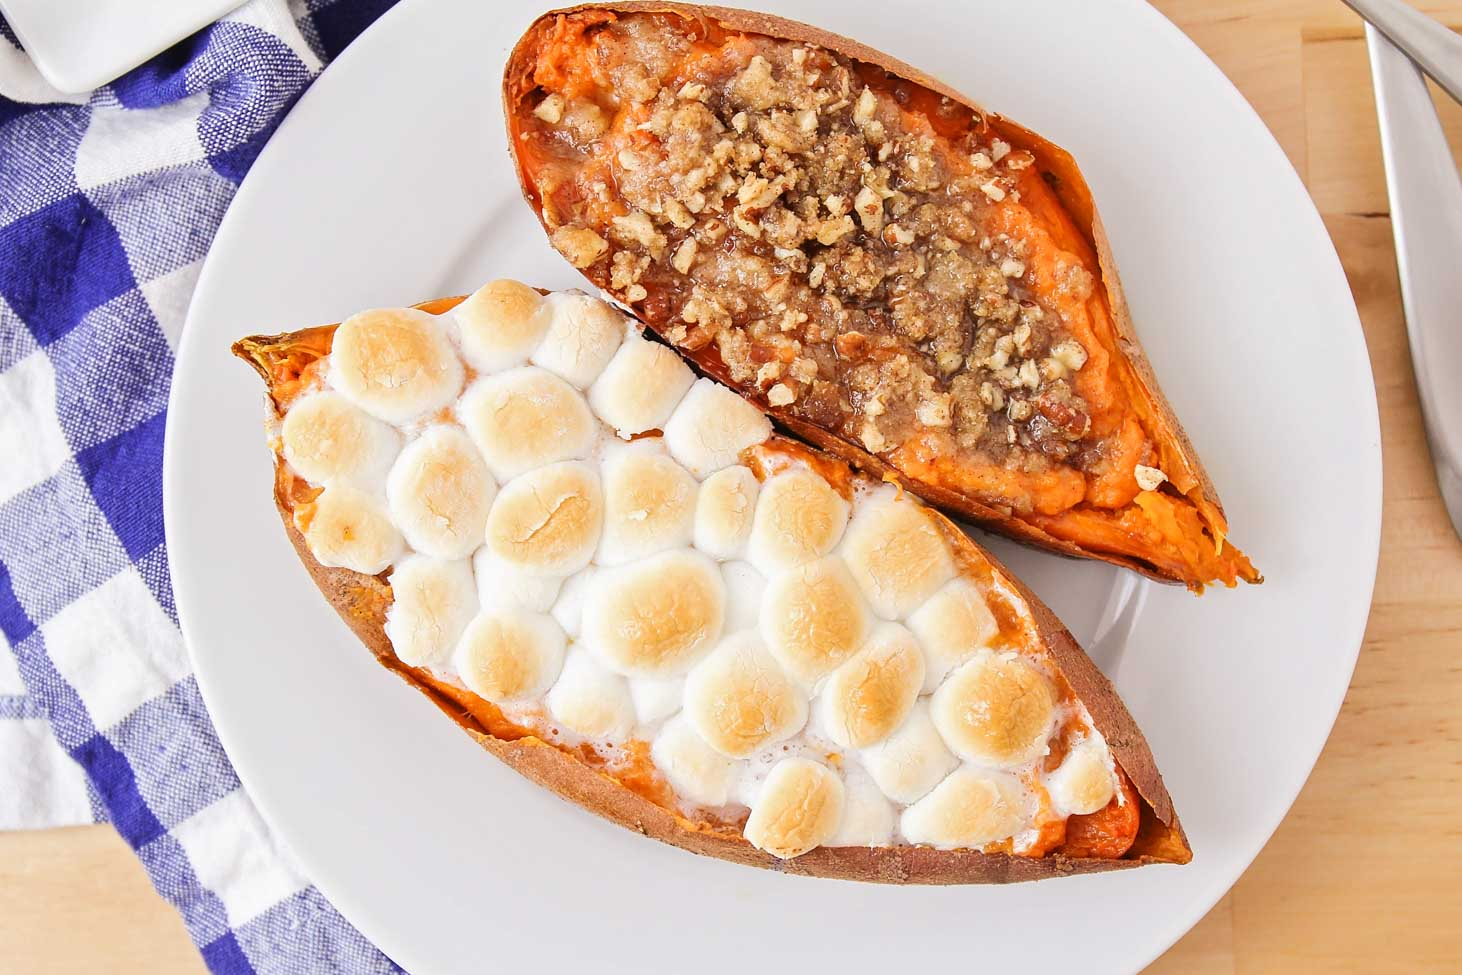 Twice baked sweet potatoes on a white plate